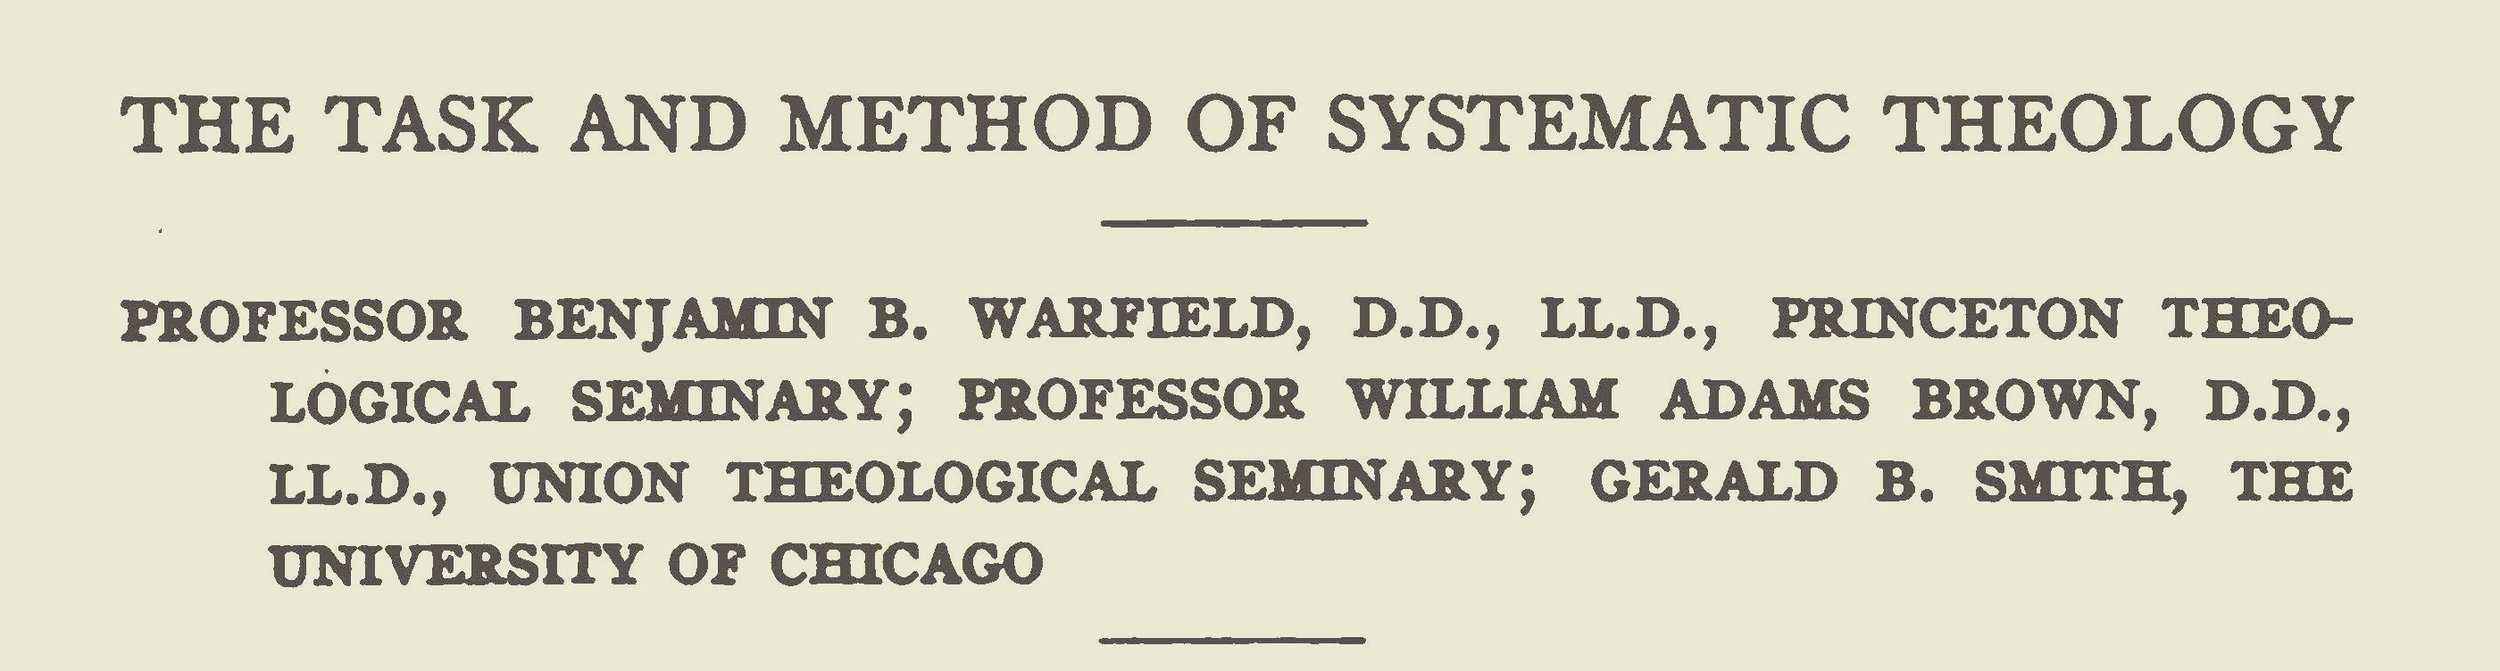 Warfield, Benjamin Breckinridge, The Task and Method of Systematic Theology Title Page.jpg